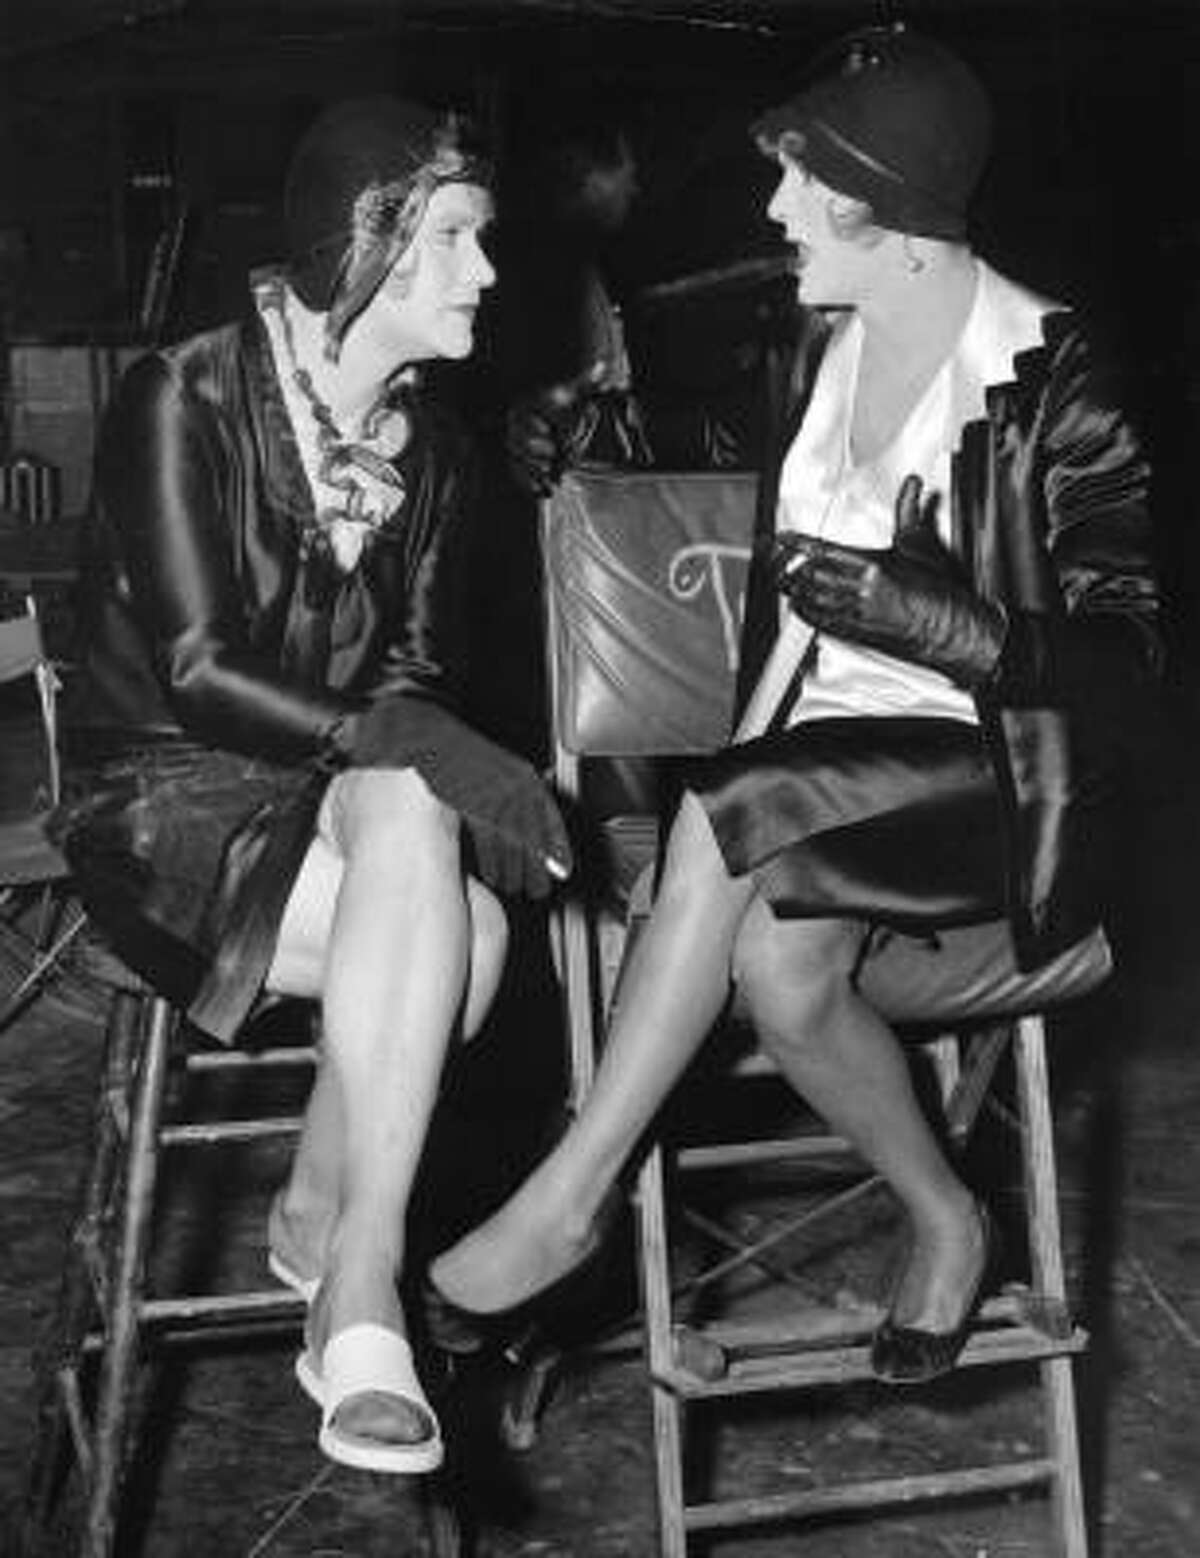 In a 1959 file photo Jack Lemmon, left, and Tony Curtis are in costume as women for the film